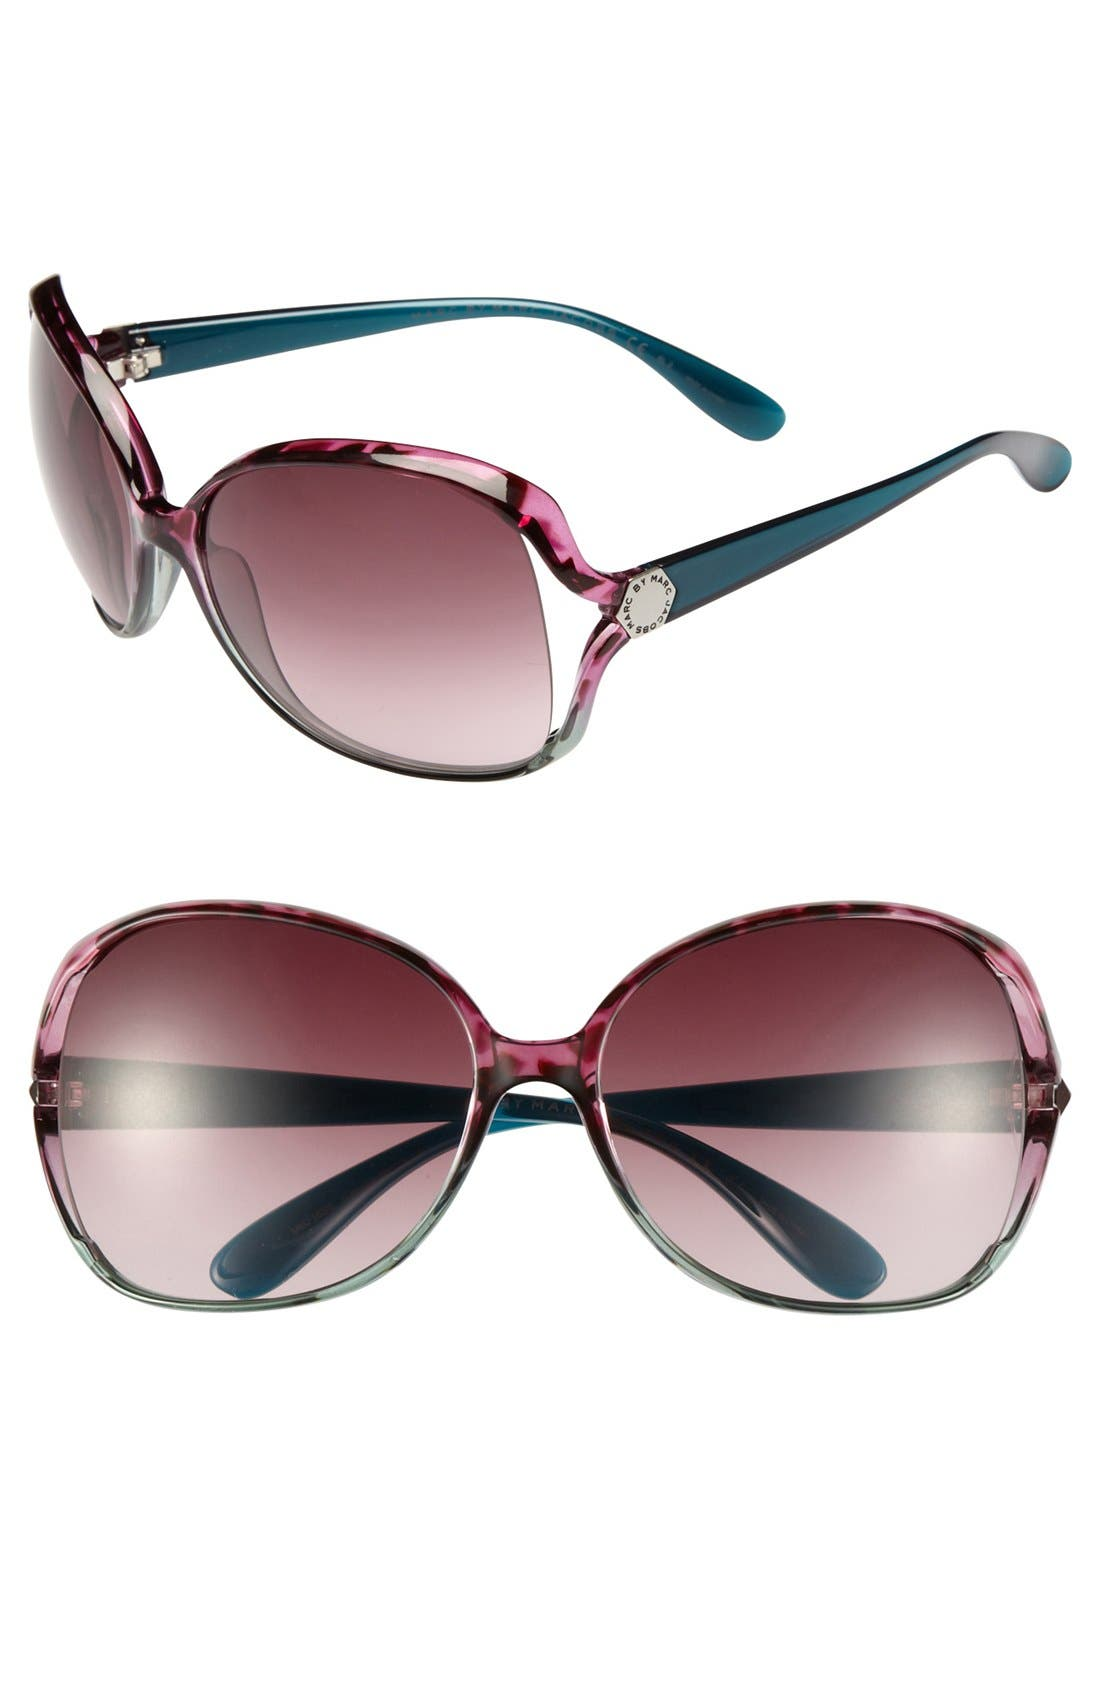 Main Image - MARC BY MARC JACOBS Oversized 59mm Square Sunglasses